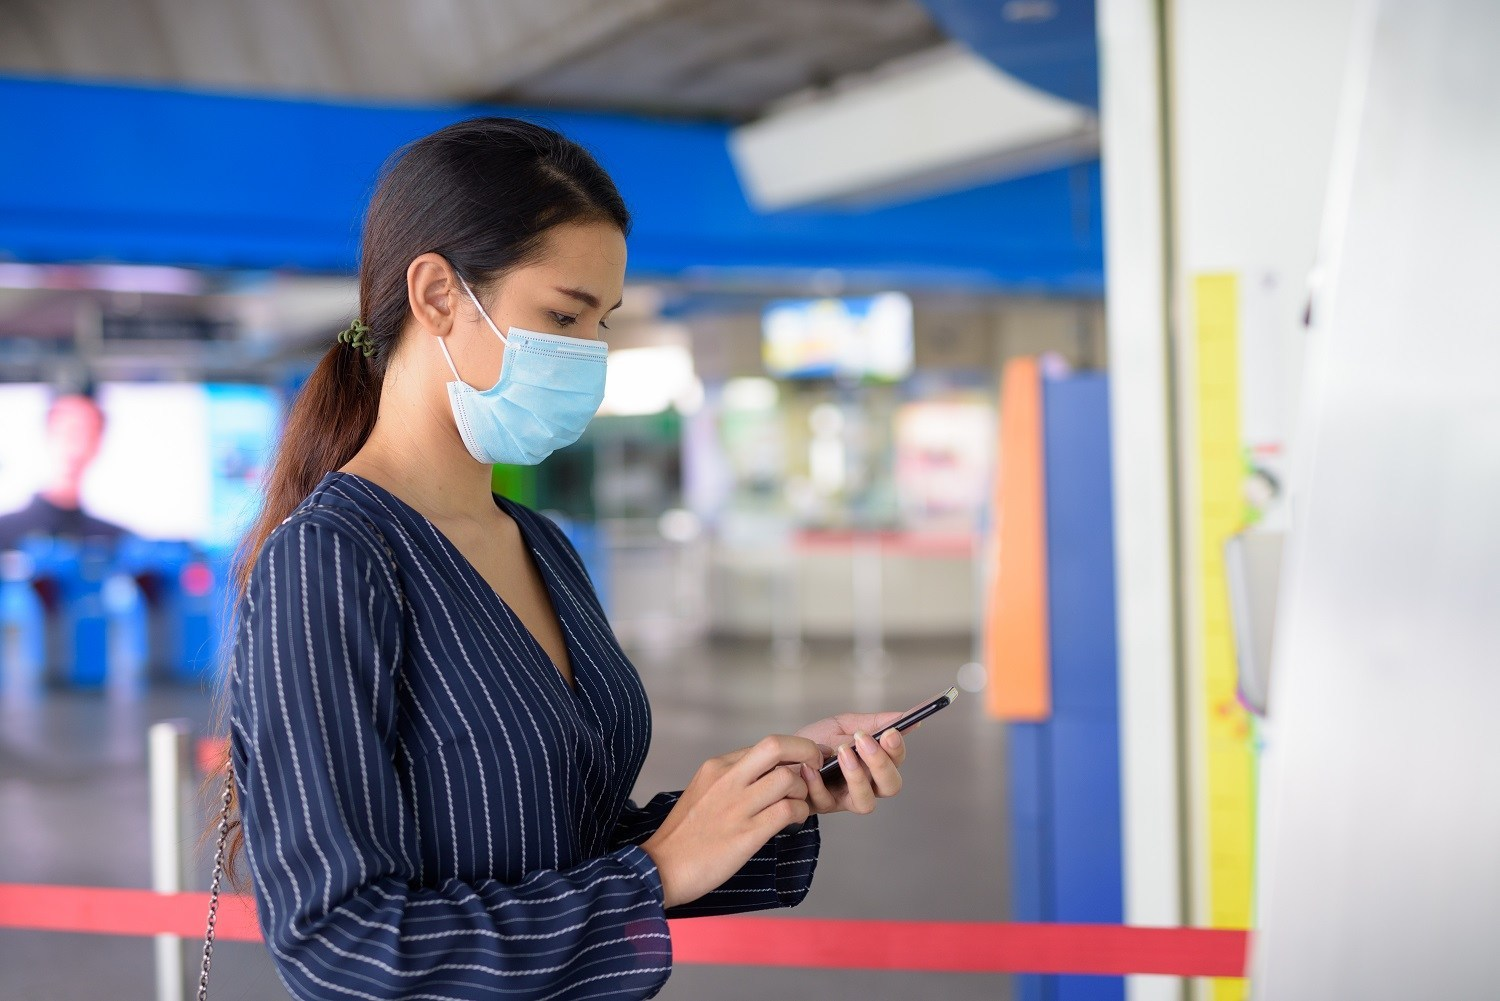 Woman wearing a mask, using her phone